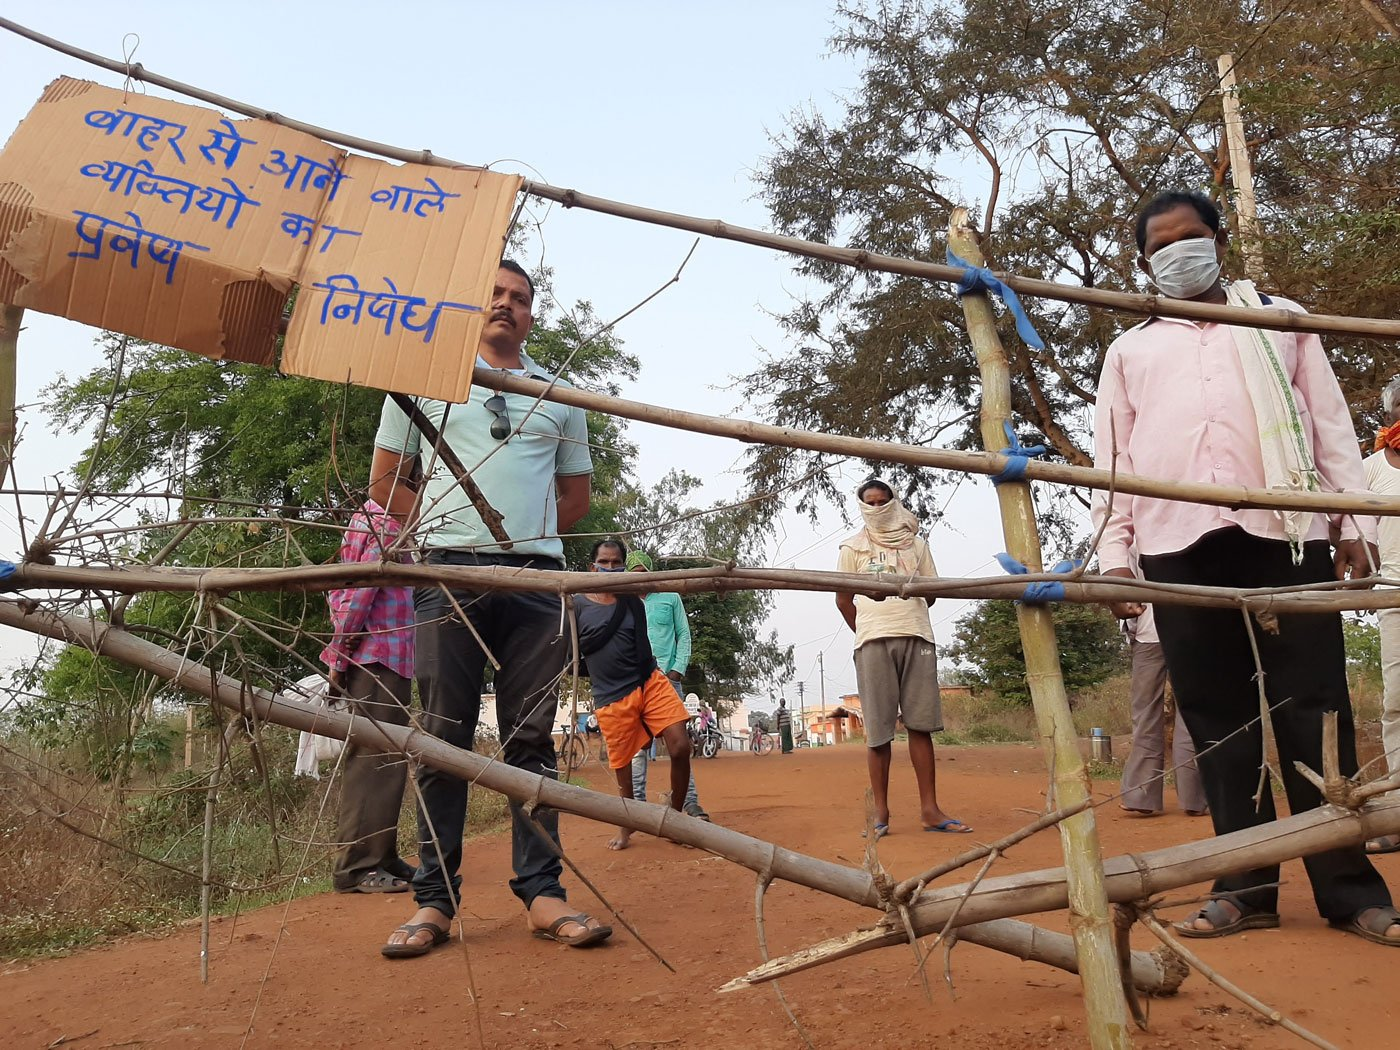 Across parts of the Bastar region, people are setting up barricades denying entry to 'outsiders' – and restricting the access of even migrants returning to their own villages